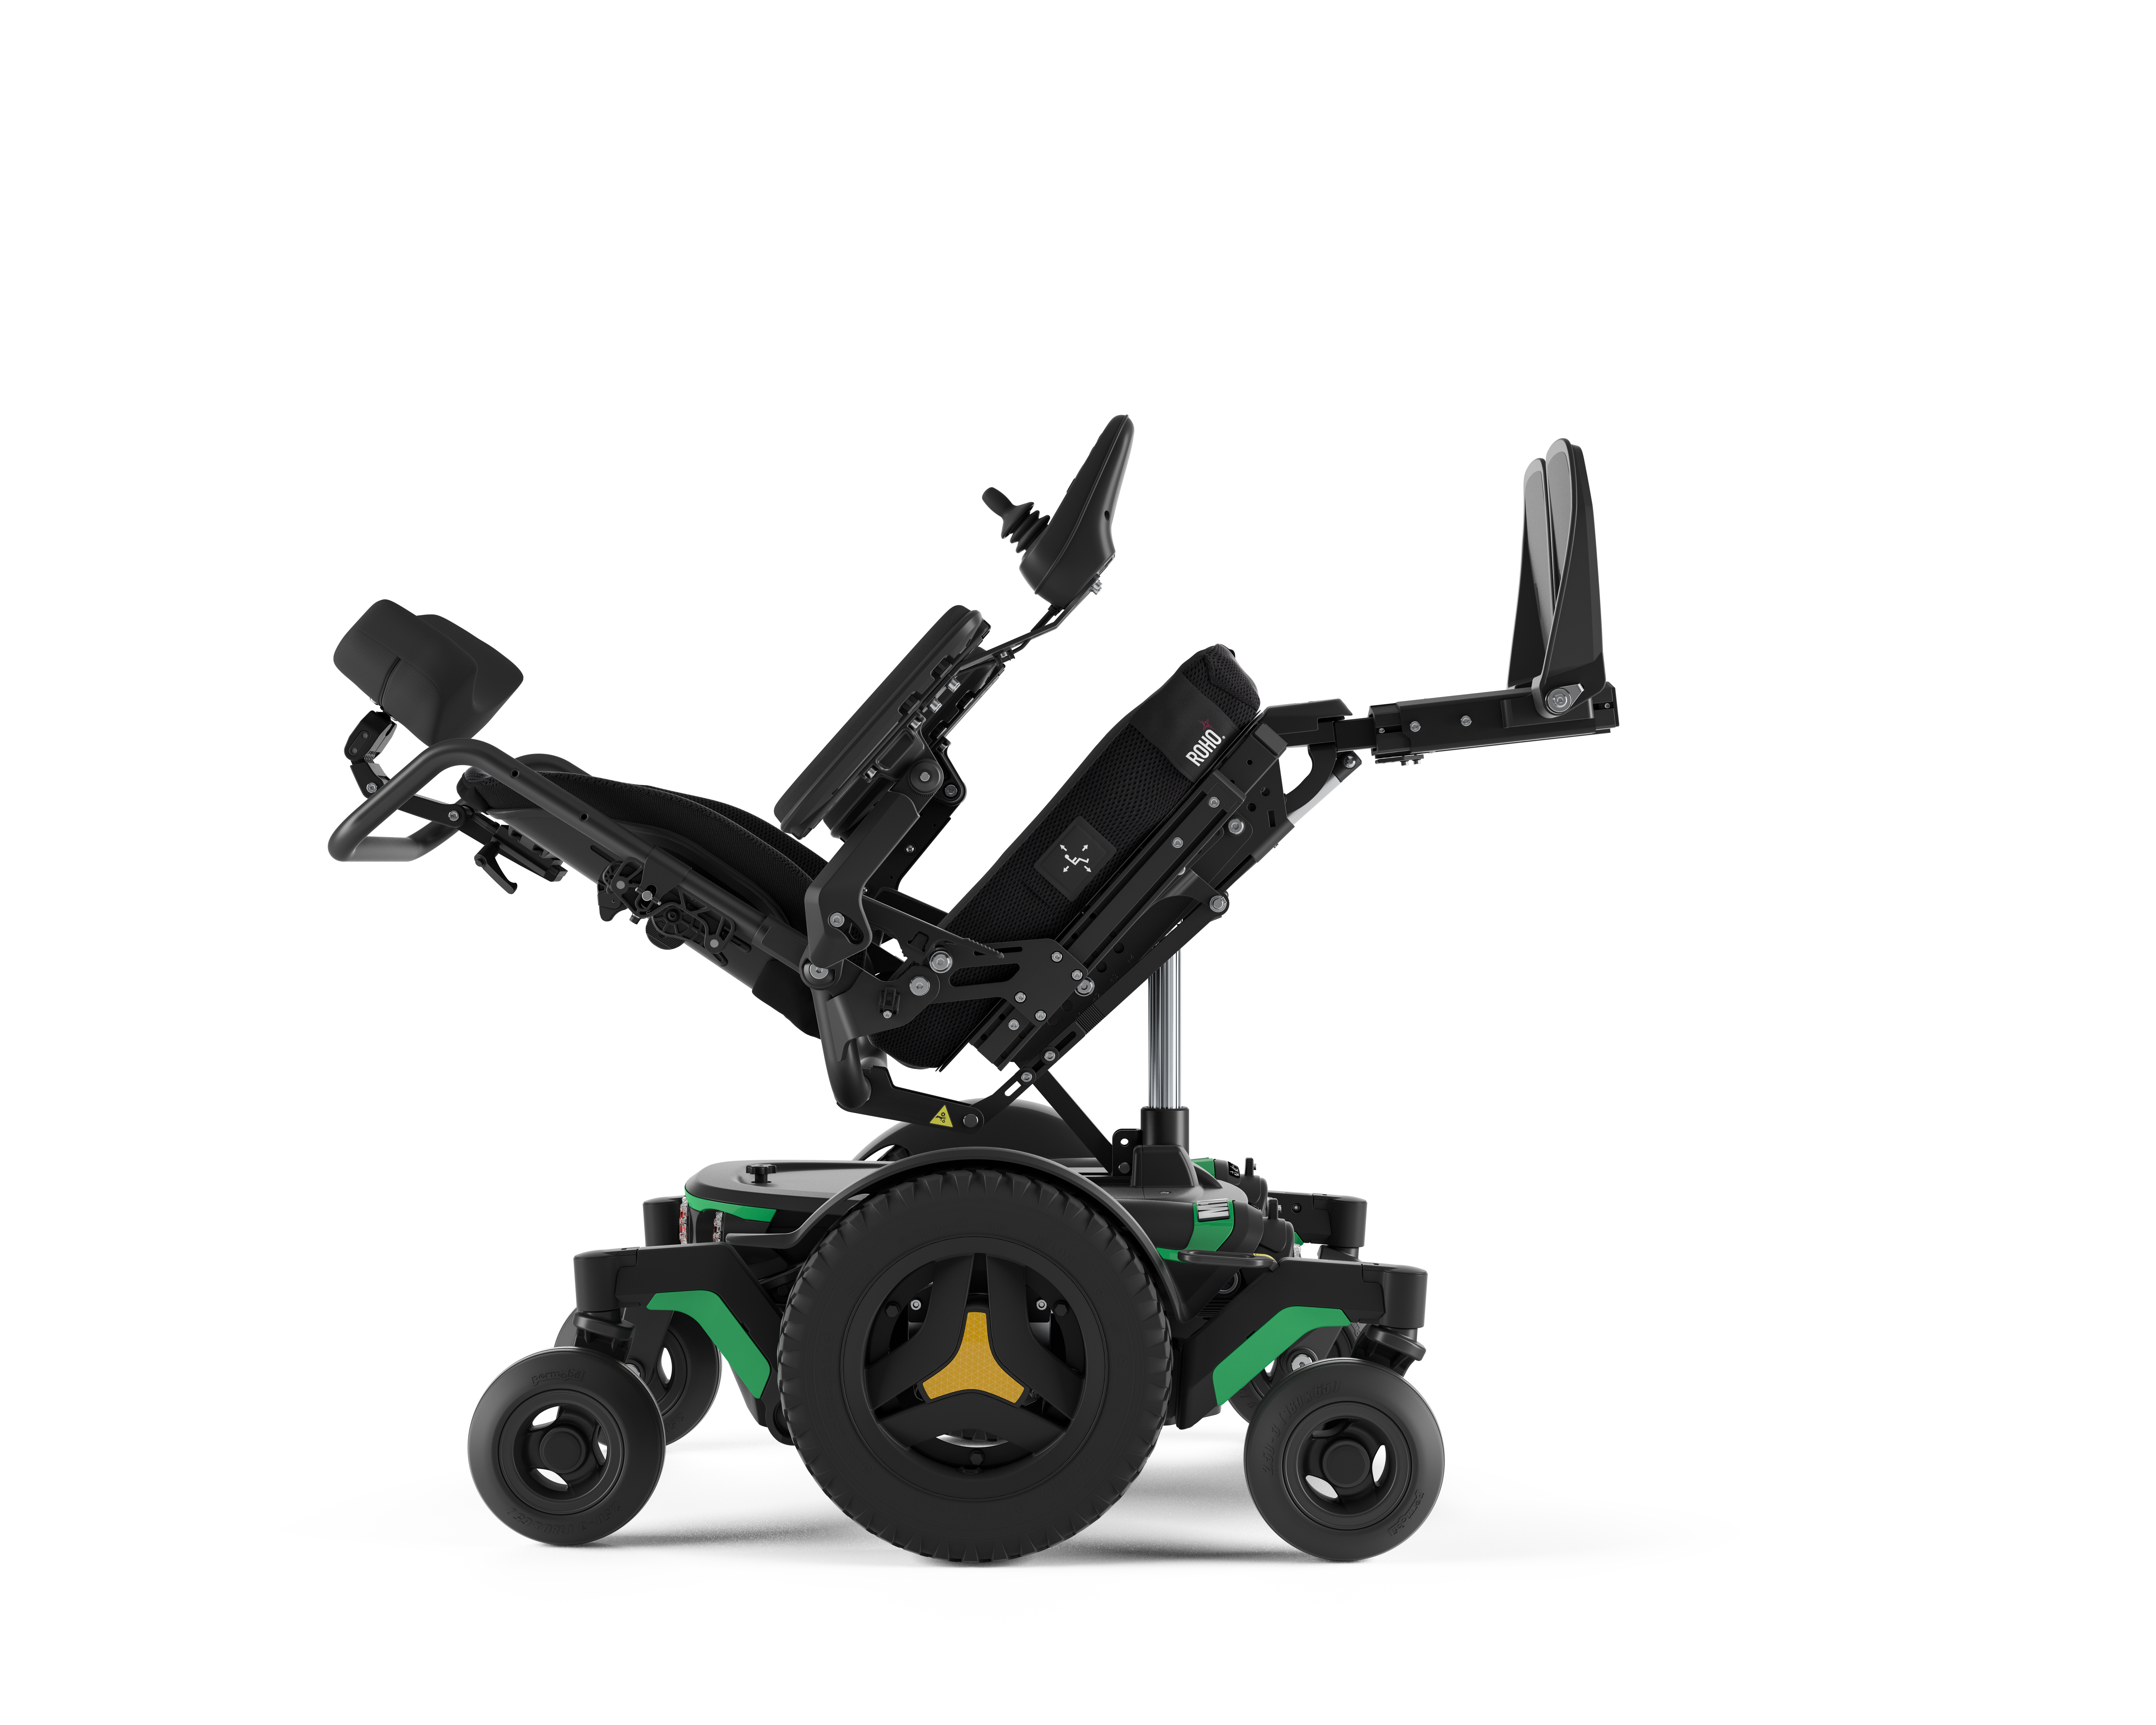 The M1 Tilt Legs Elevated of the Power Wheelchair.